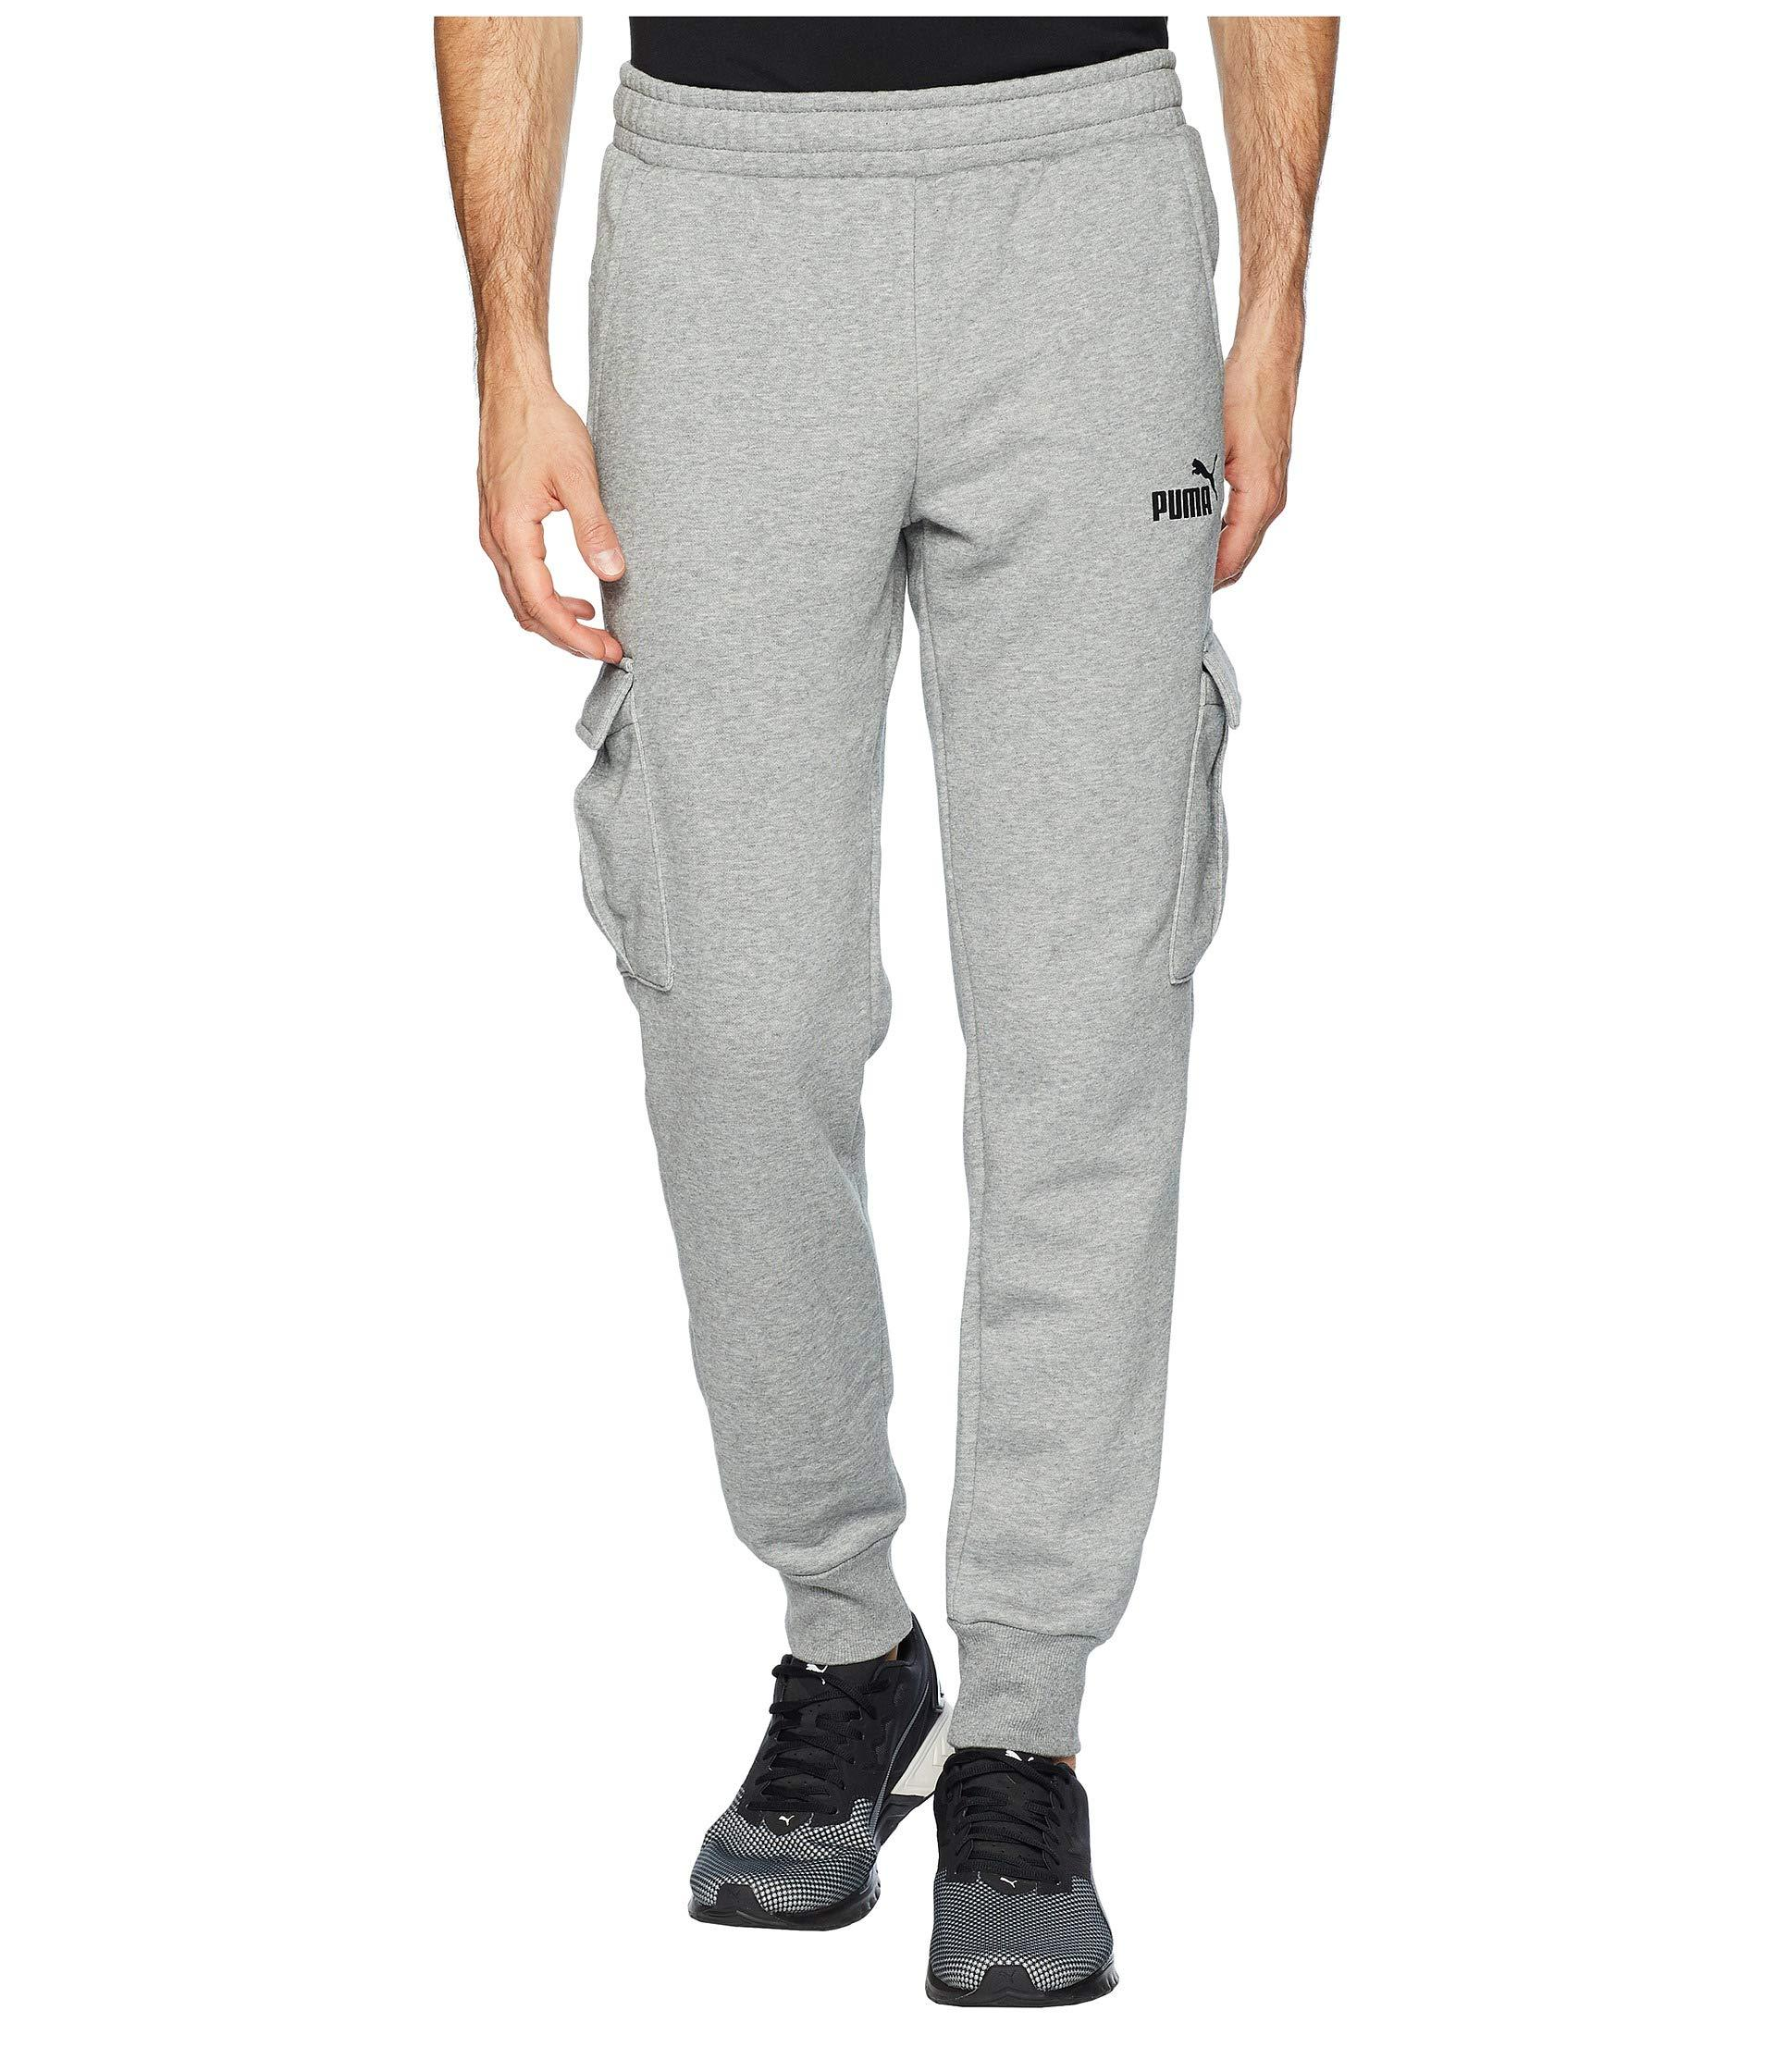 a114c34d526c Lyst - PUMA Ess+ Pocket Pants in Gray for Men